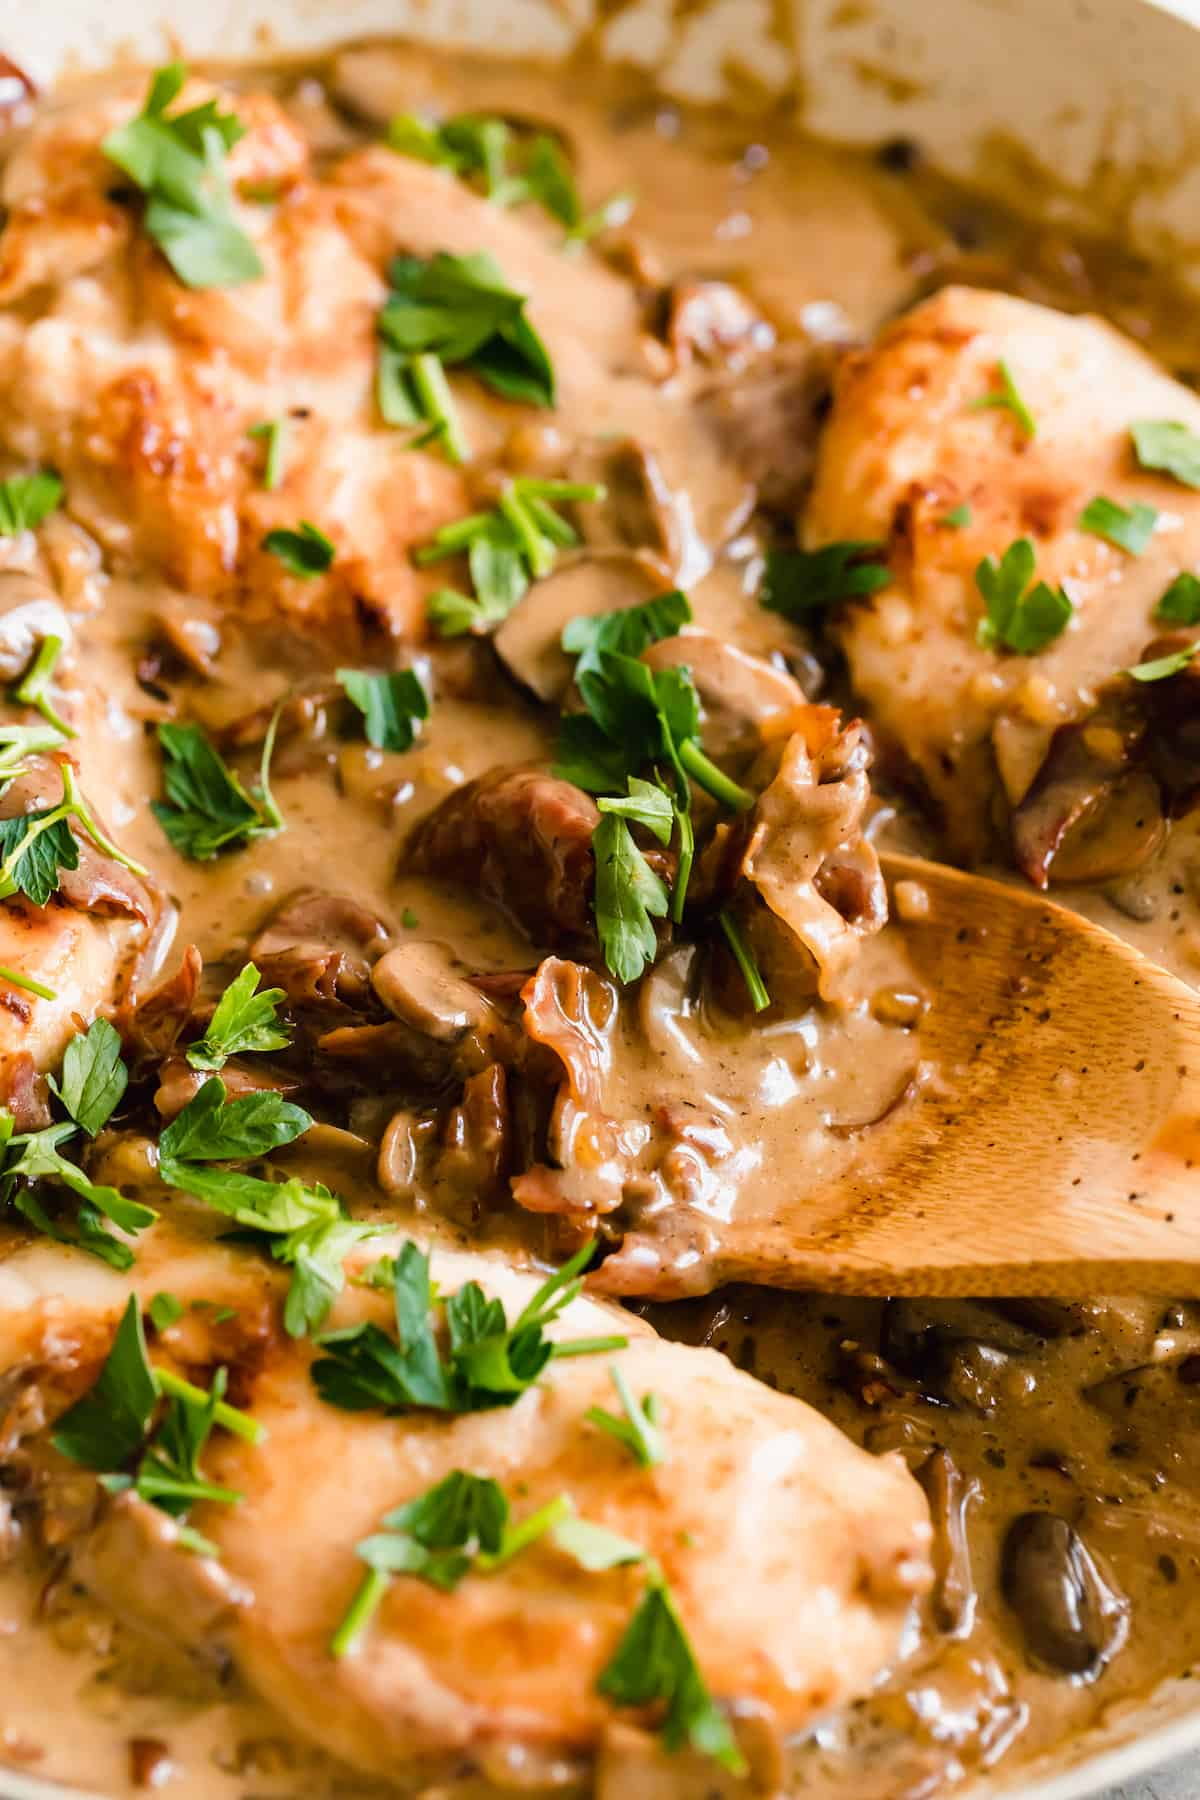 Close up of mushrooms cooking in a creamy marsala sauce with fresh herbs sprinkled on top.